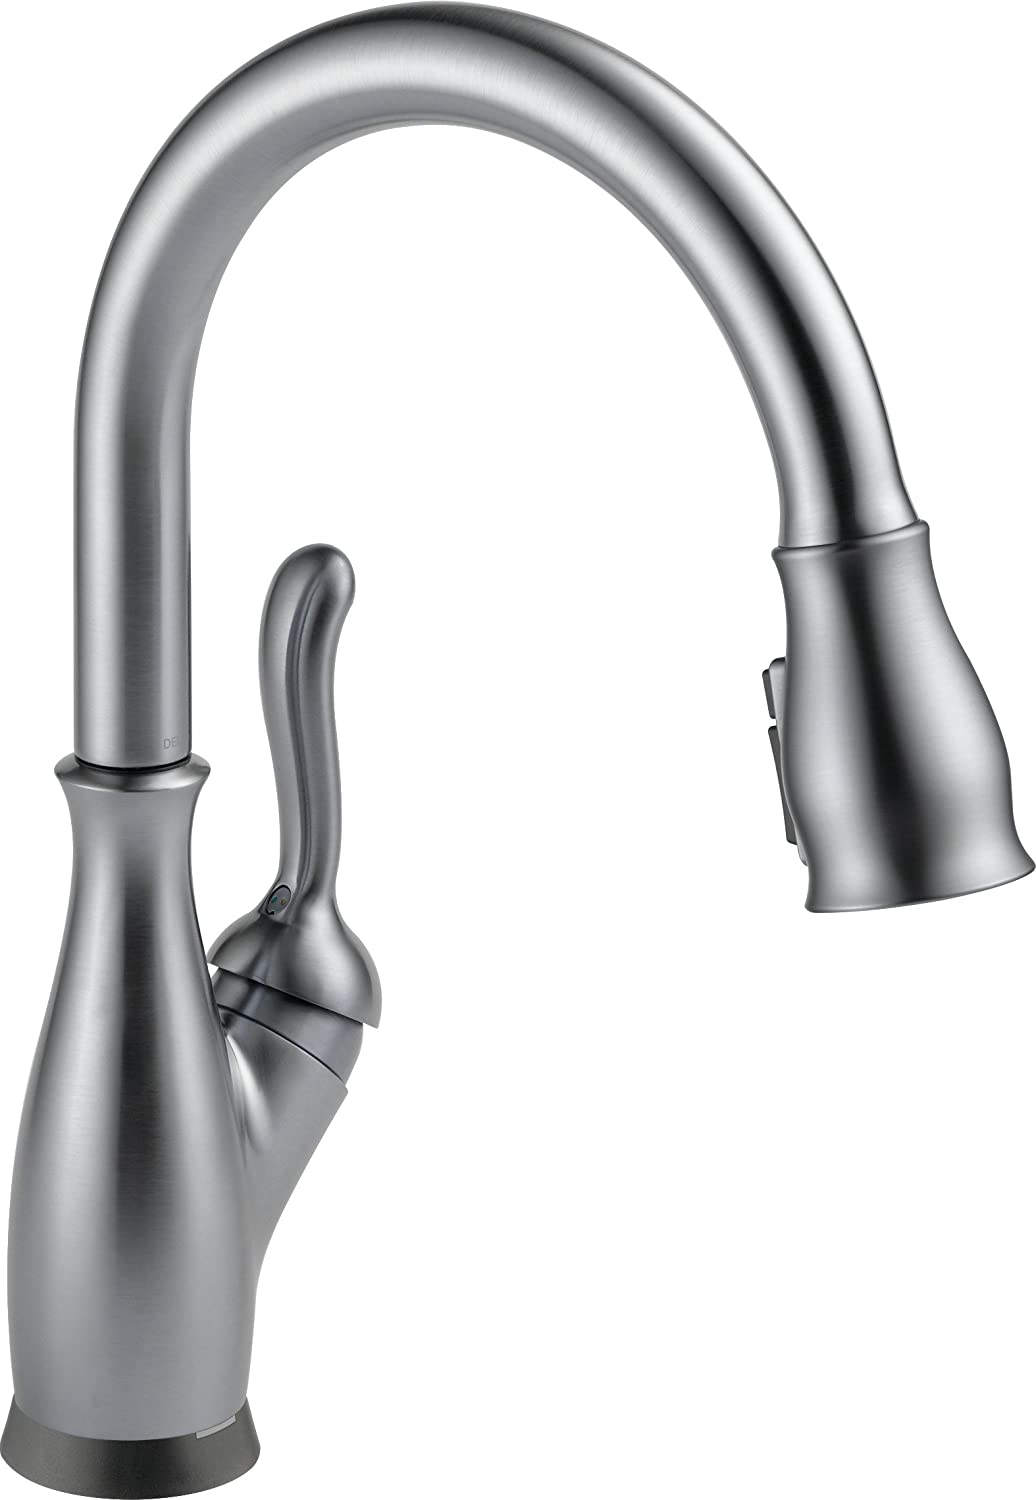 Delta Faucet Leland Single-Handle Touch Kitchen Sink Faucet with Pull Down  Sprayer, Touch2O and ShieldSpray Technology, Magnetic Docking Spray Head,  ...